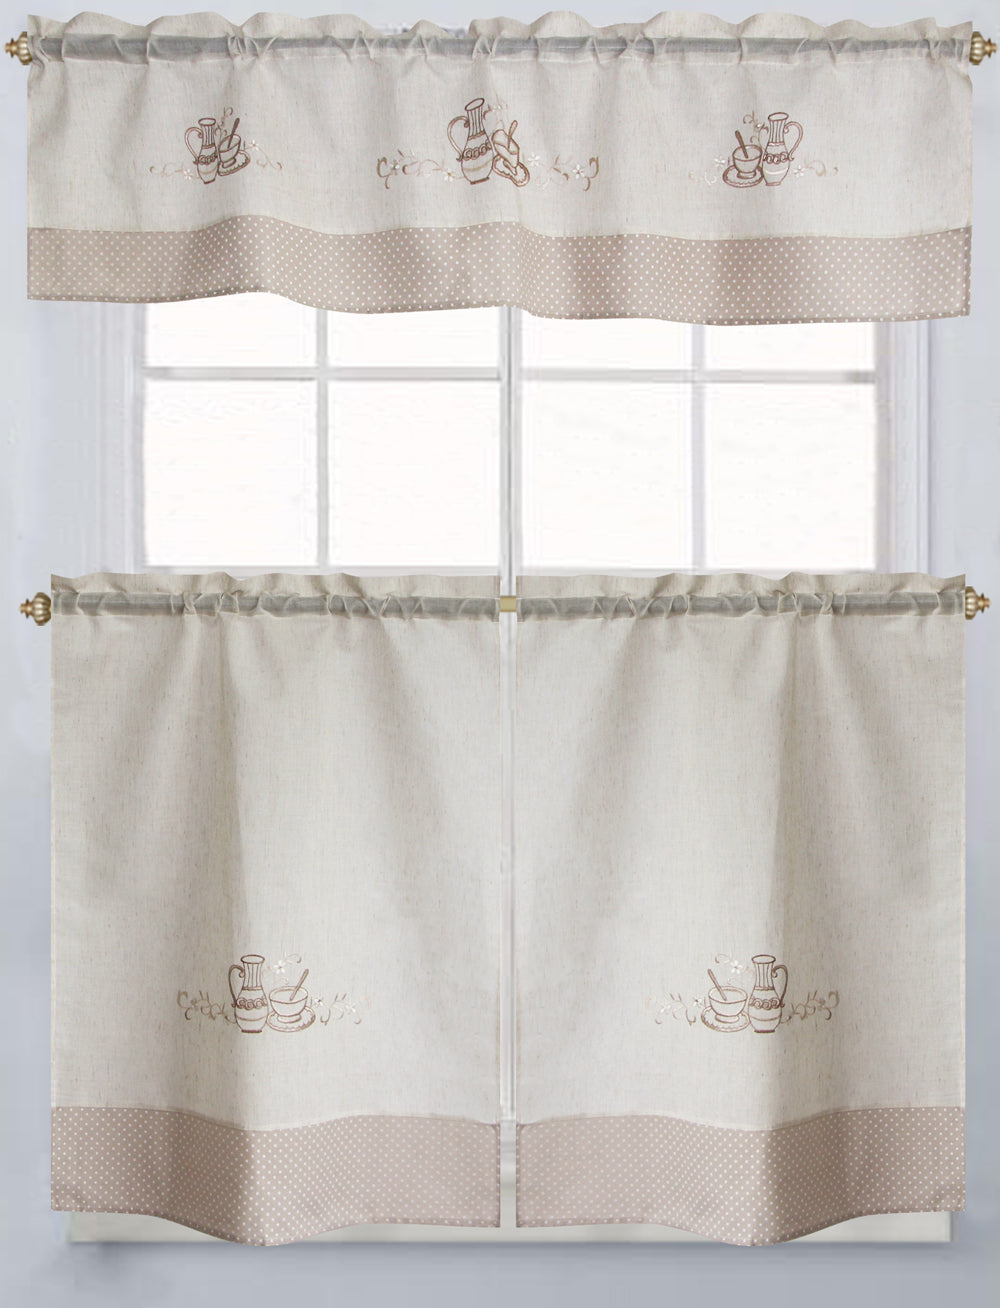 "Latte Embroidered Tier & Valance Set 36"" - - Marburn Curtains"